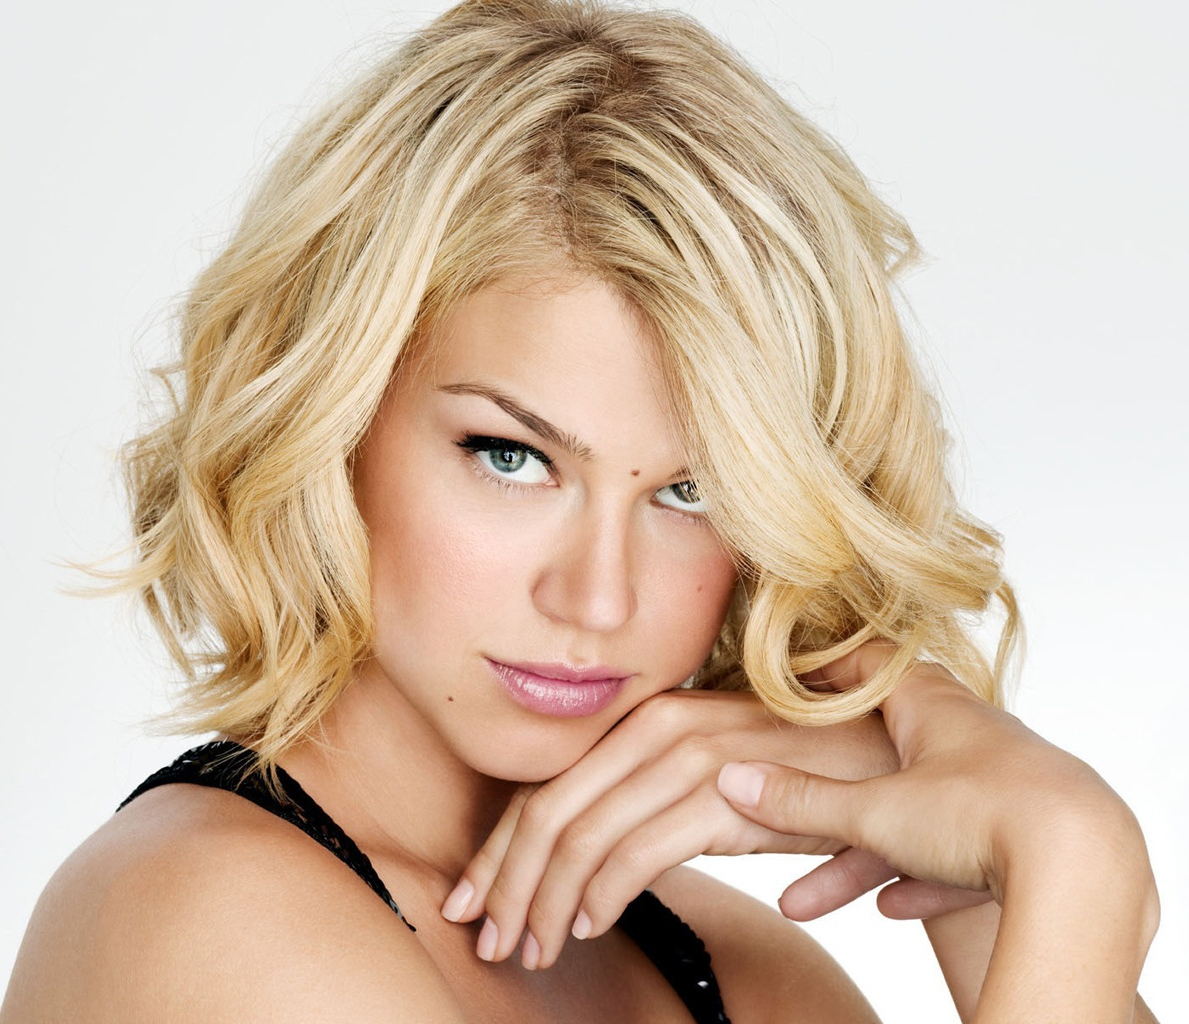 Short Hairstyles Thin Hair 2013 | Hairtechkearney In Cute Short Hairstyles For Fine Hair (View 23 of 25)